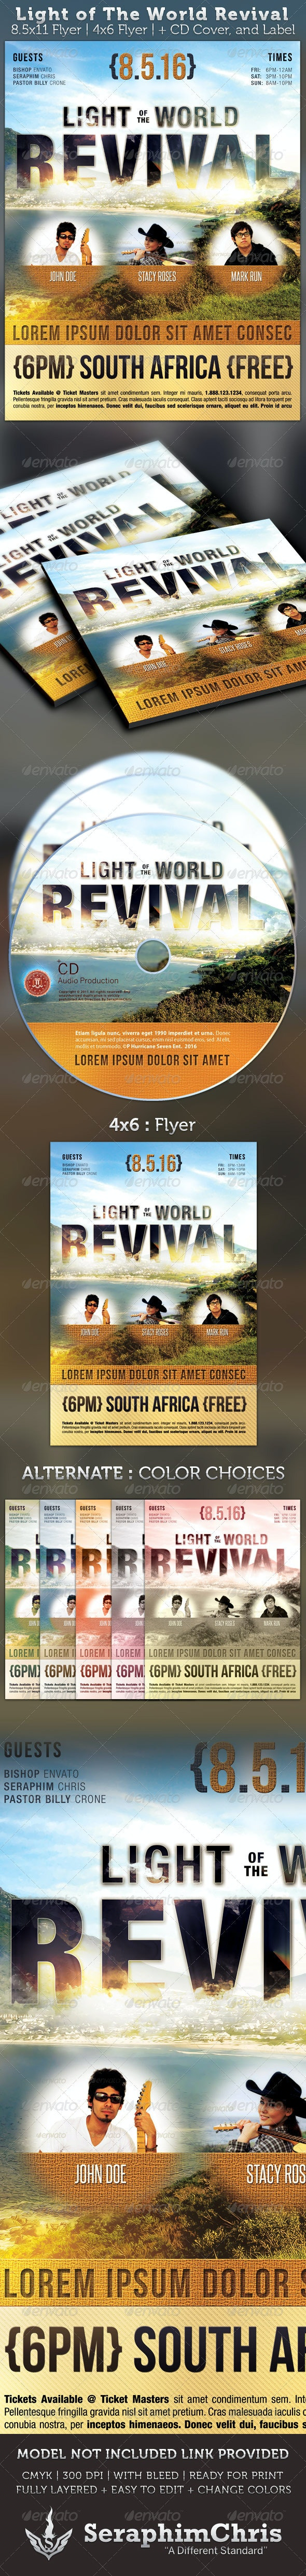 Light of The World Revival Flyer and CD Template - Church Flyers